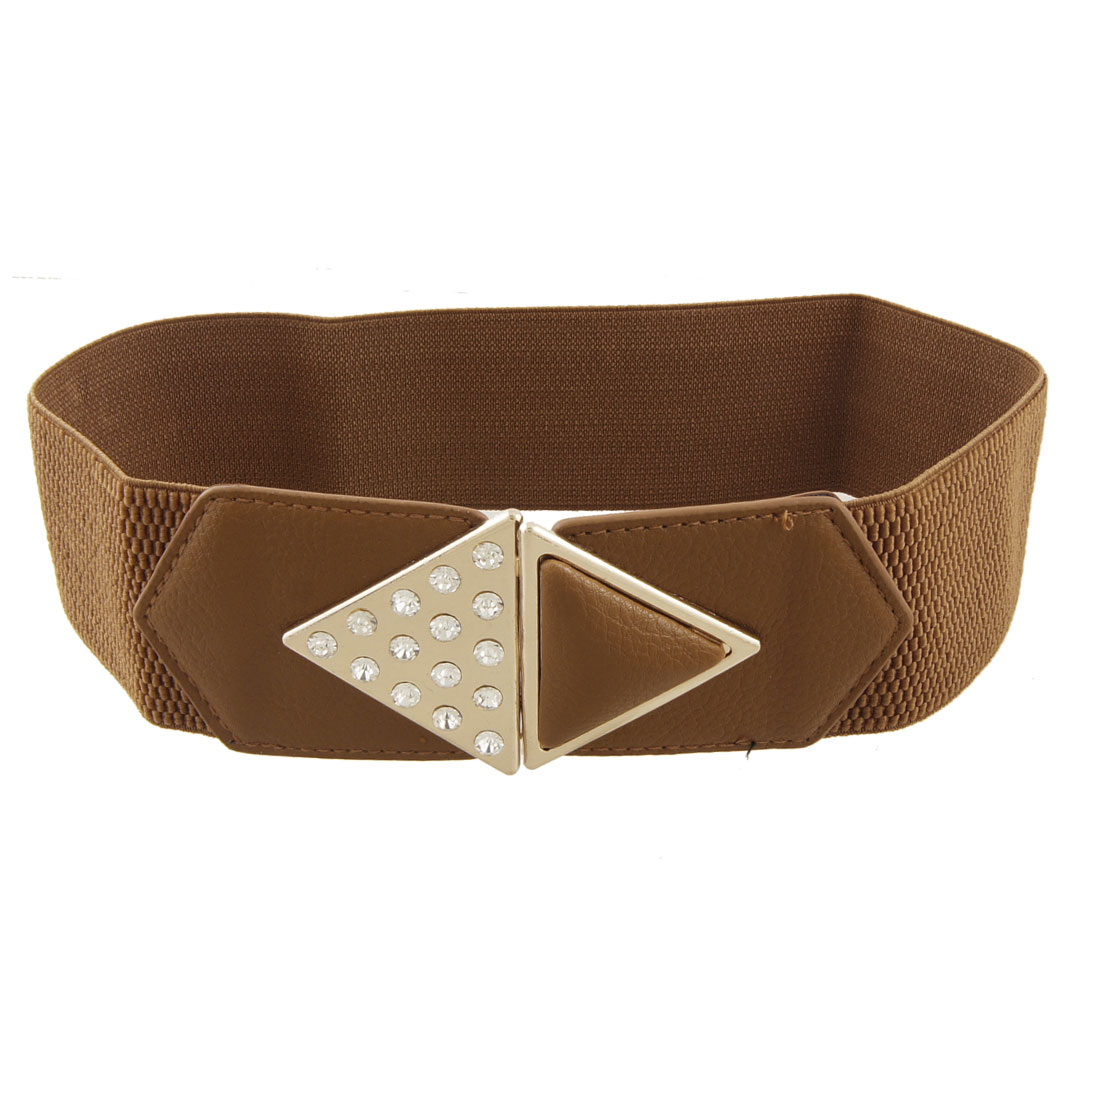 Rhinestone Decor Rhombus Buckle Brown Elastic Cinch Belt for Lady